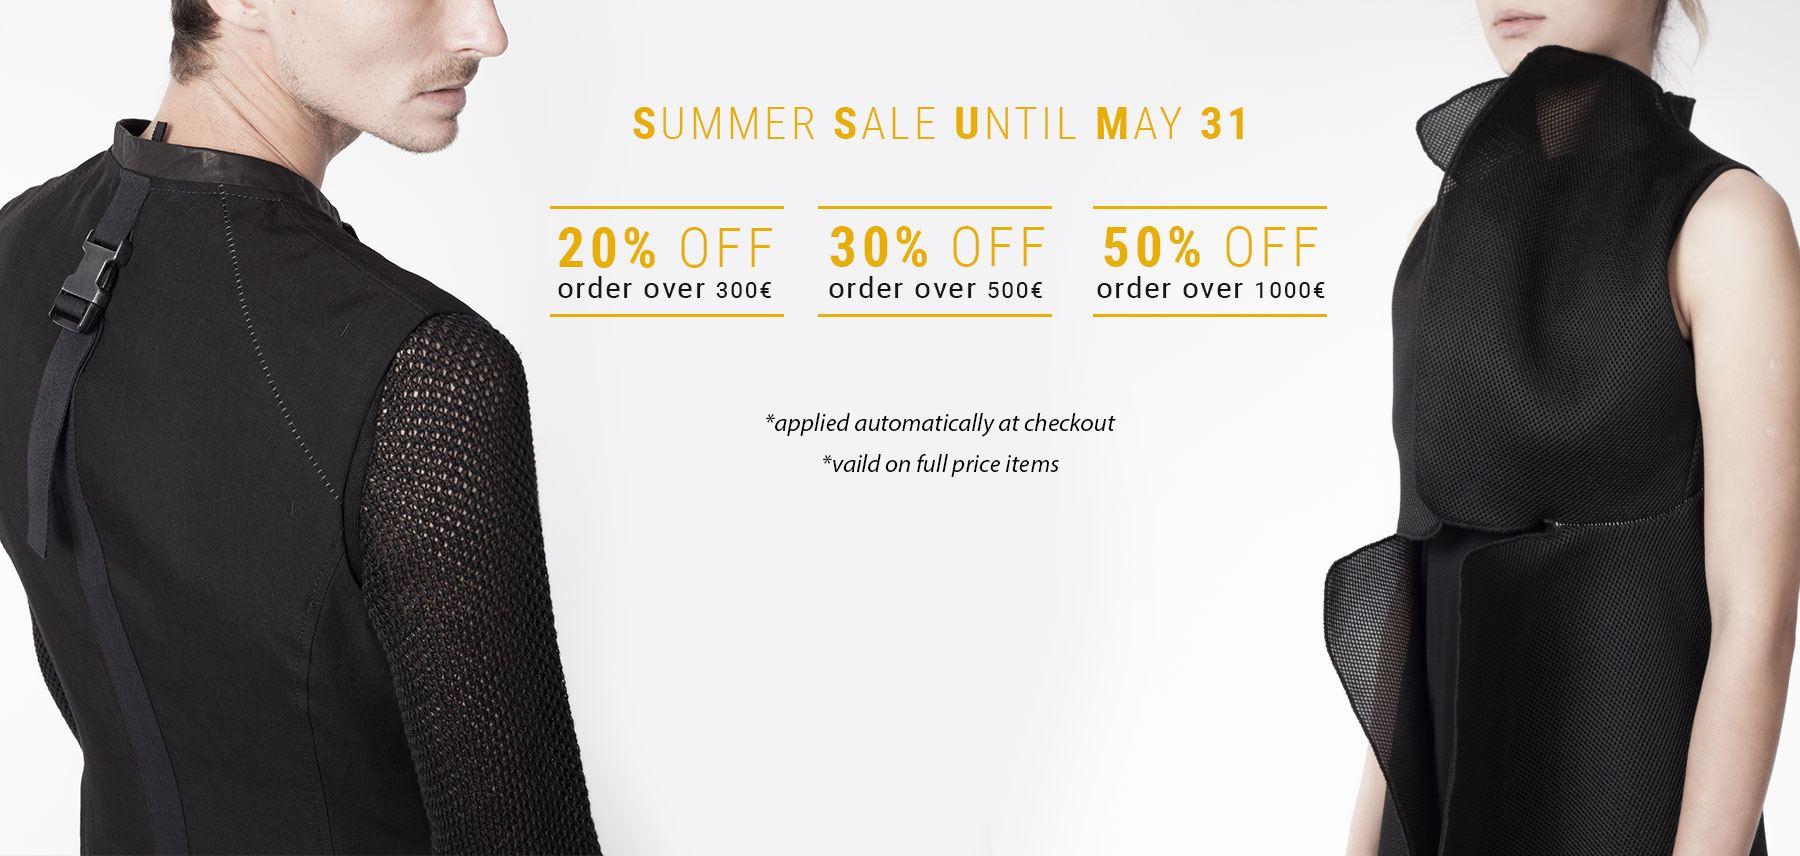 SS16 end of May 2016 Sale